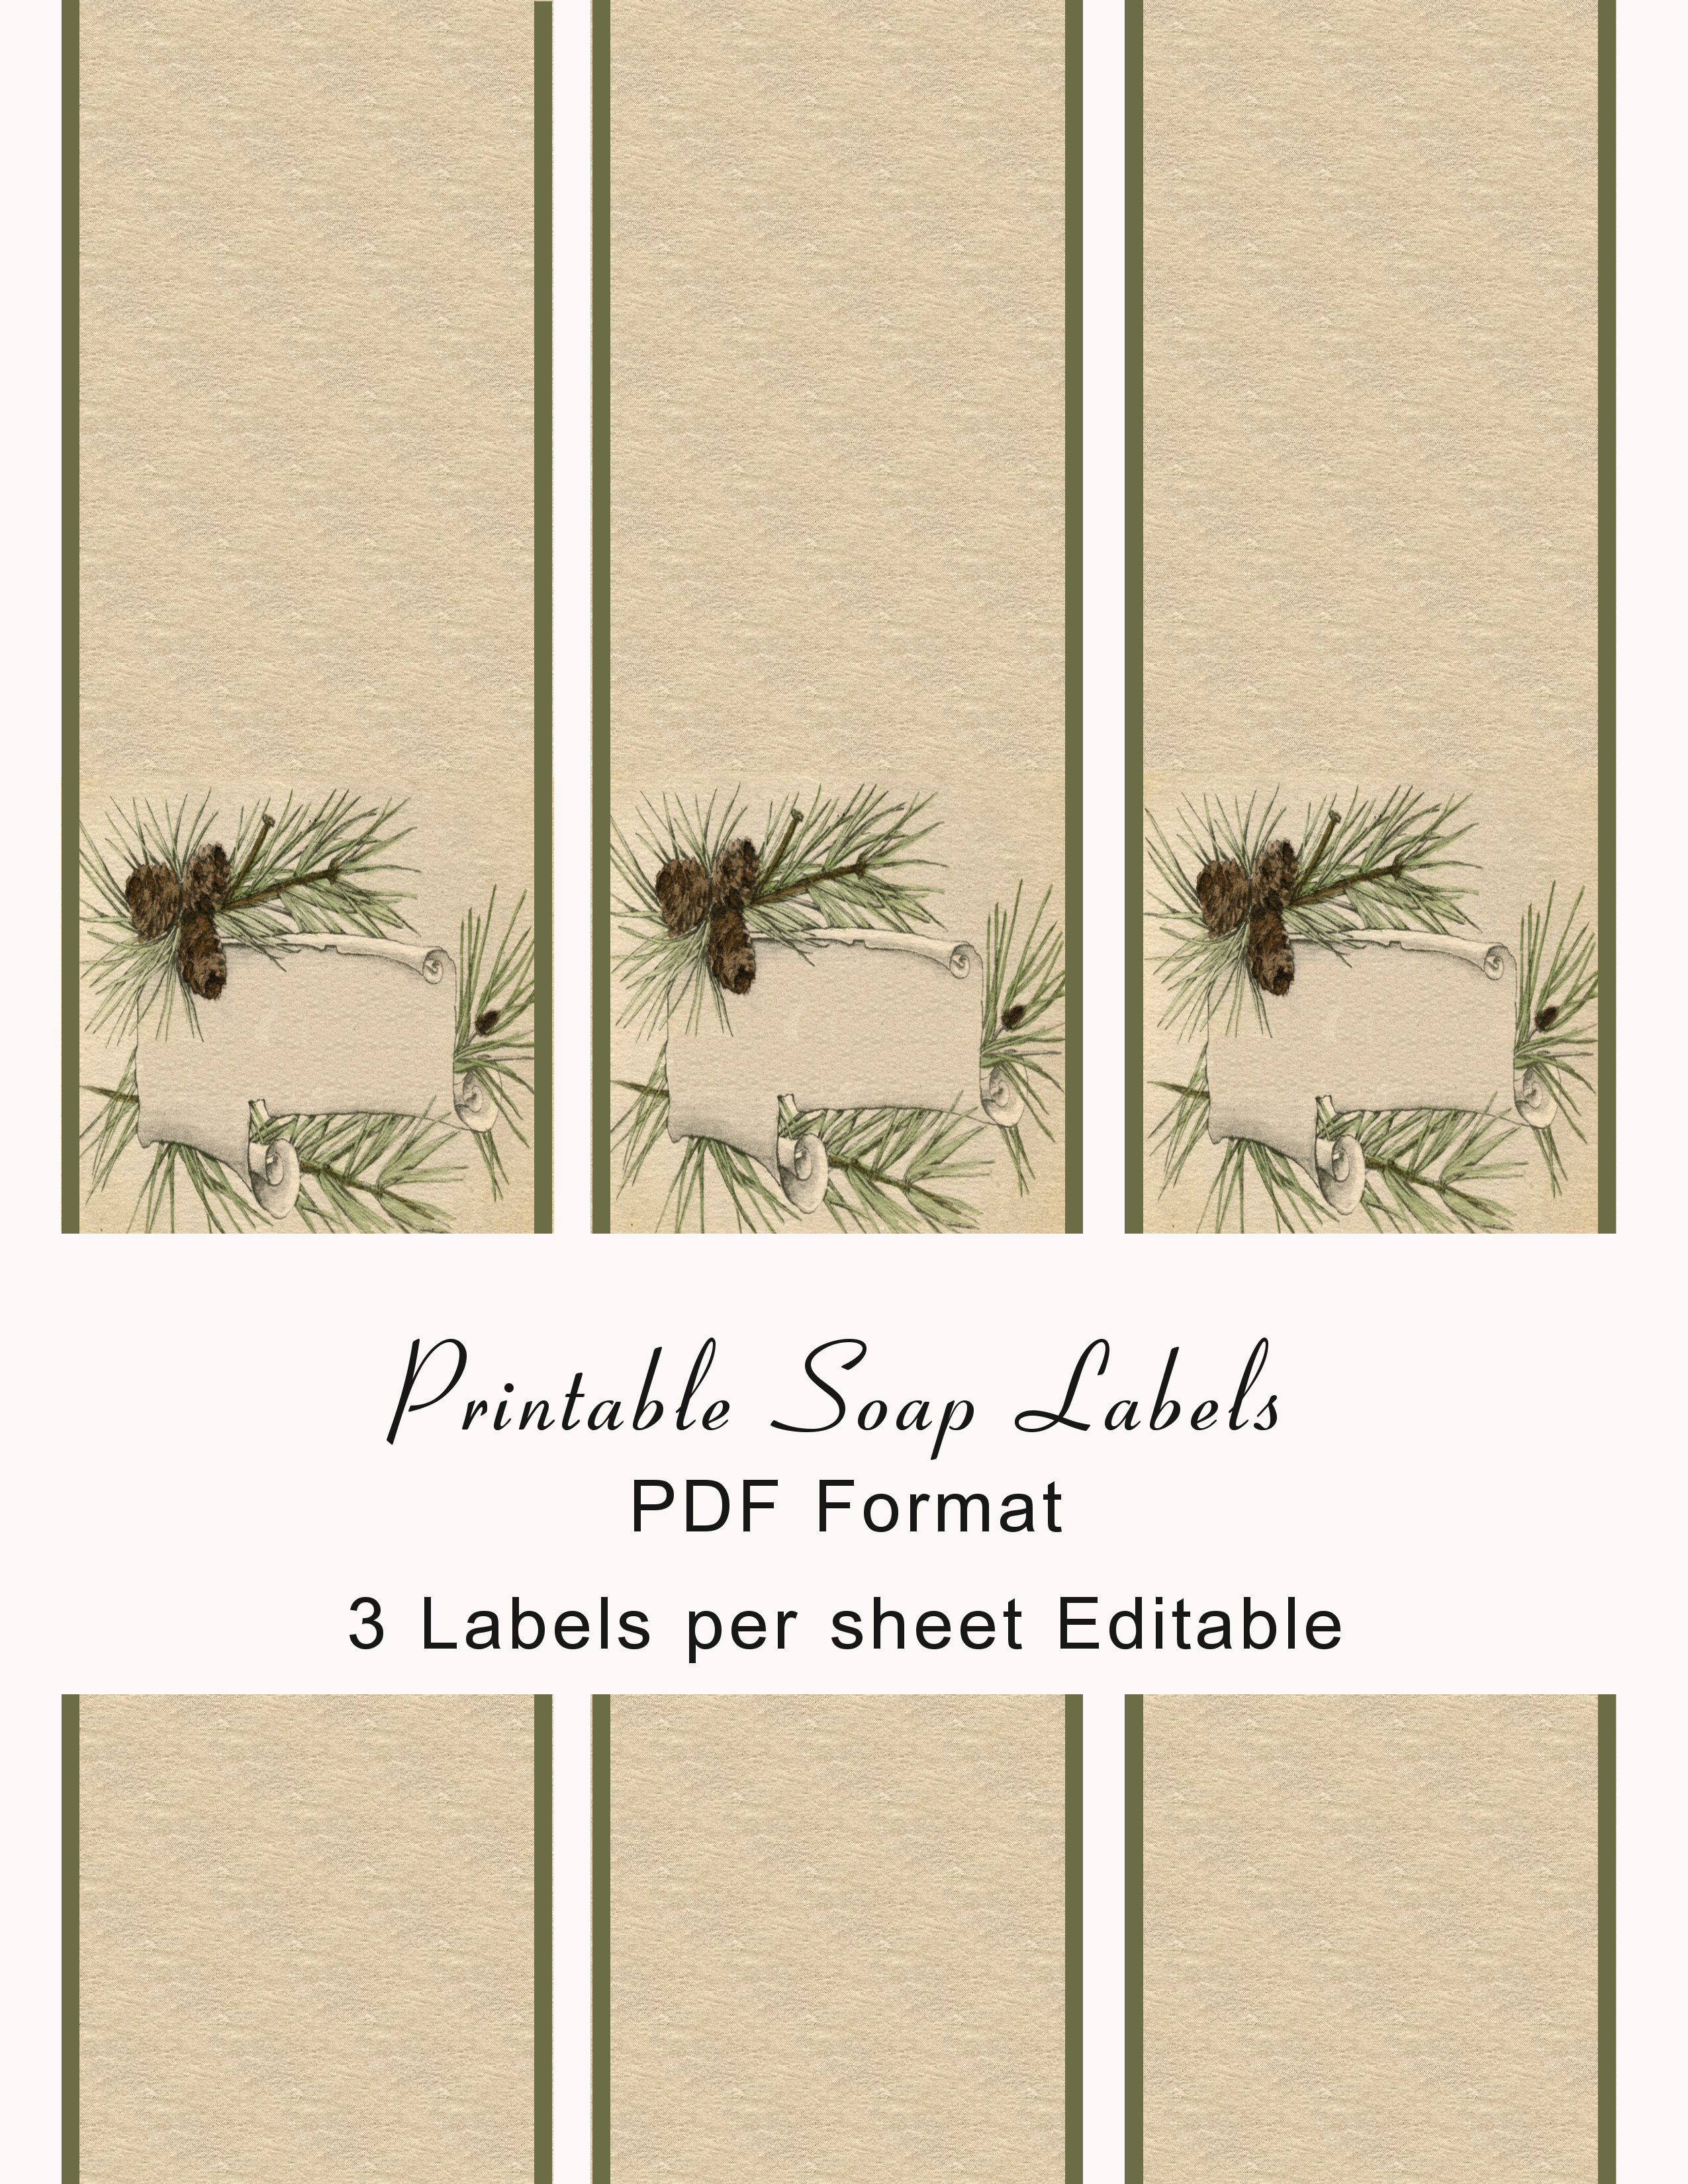 Free Printable Soap Labels Template from www.printablee.com